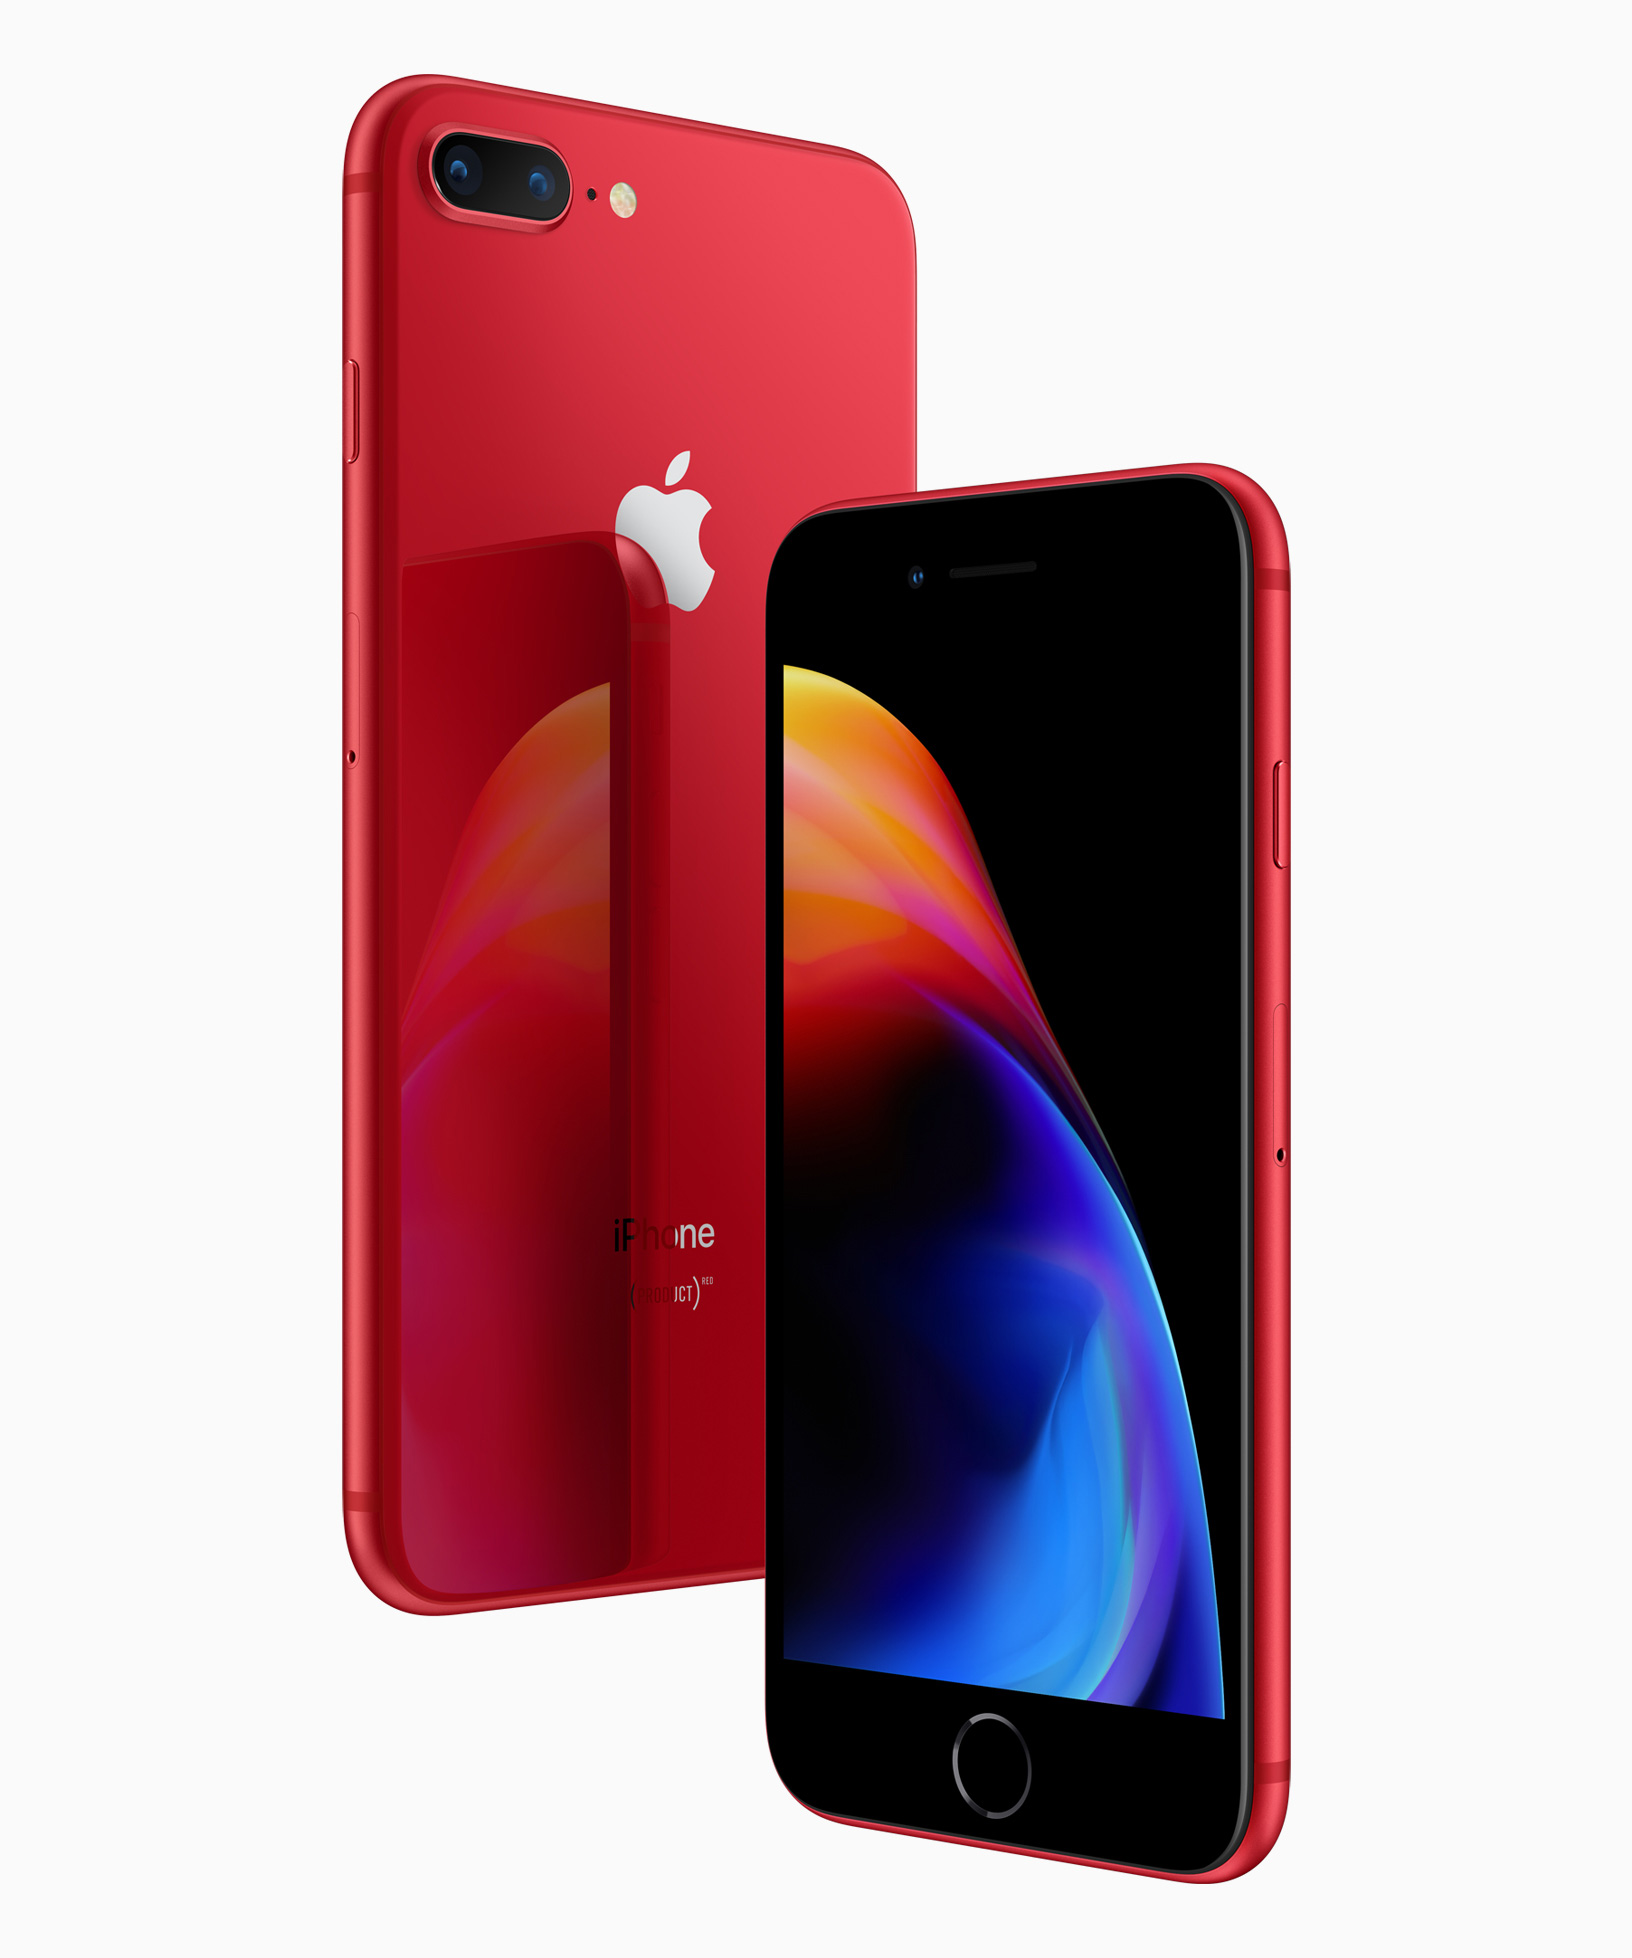 iphone8_iphone8plus_product_red_front_back_041018.jpg